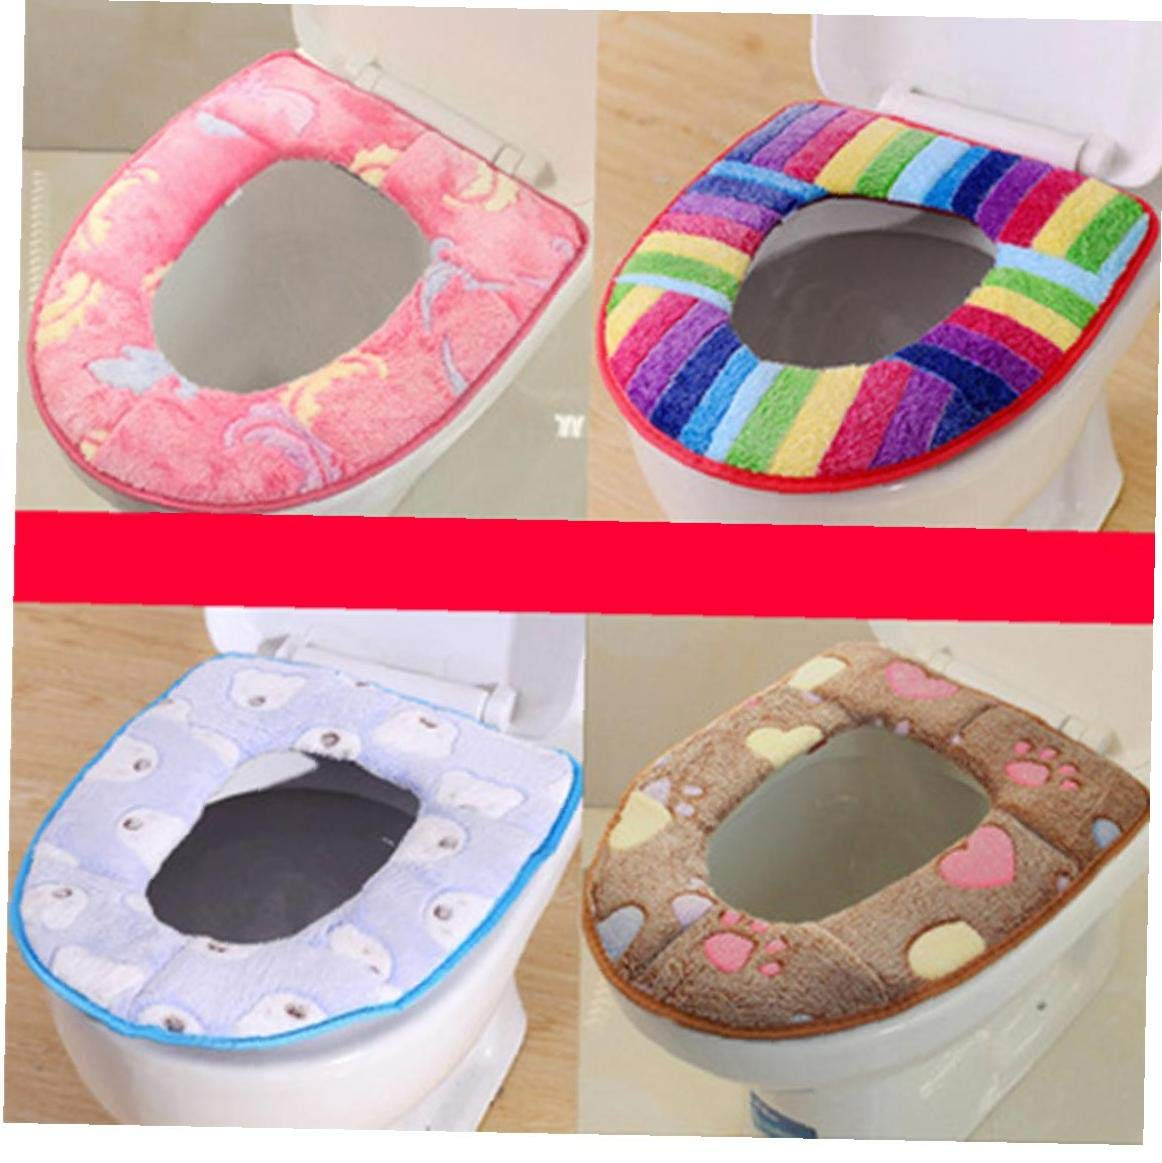 Stili Casuali AMOYER WC Peluche Mat Inverno Addensare Toilet Seat Cover Warmer Accessori Bagno Igienici Cuscino